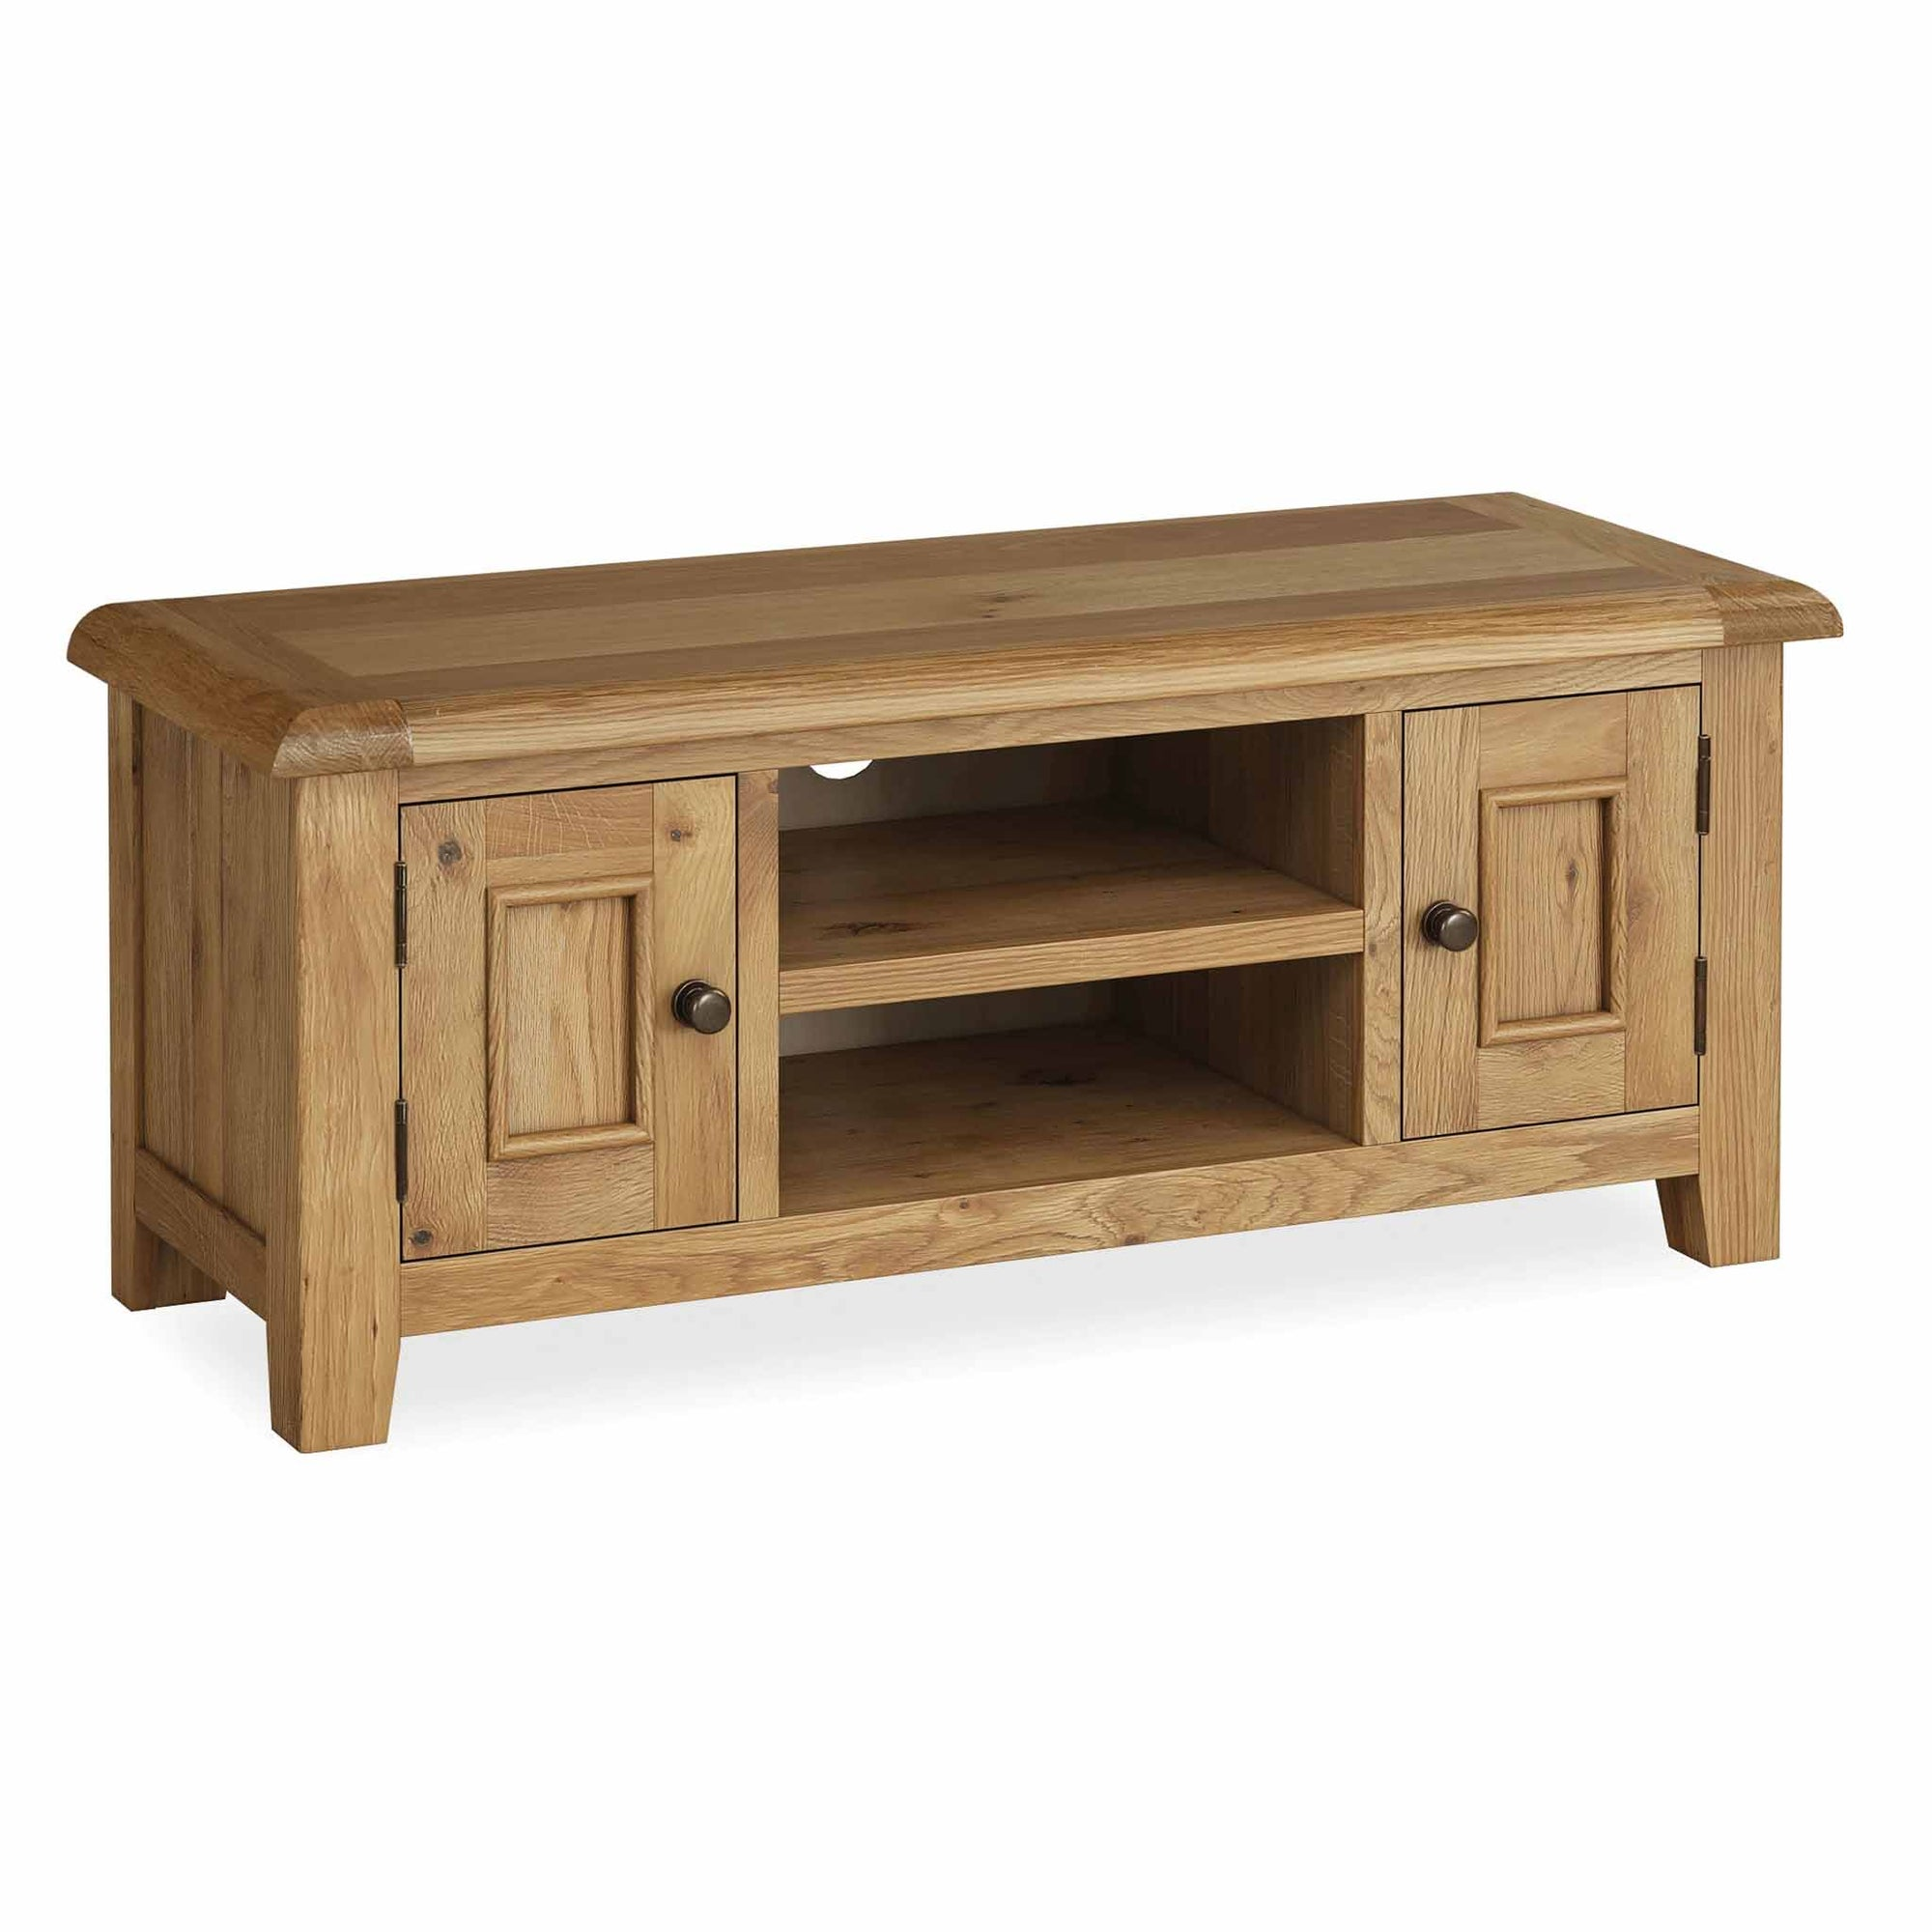 The Canterbury 120cm Oak TV Stand Storage Unit by Roseland Furniture